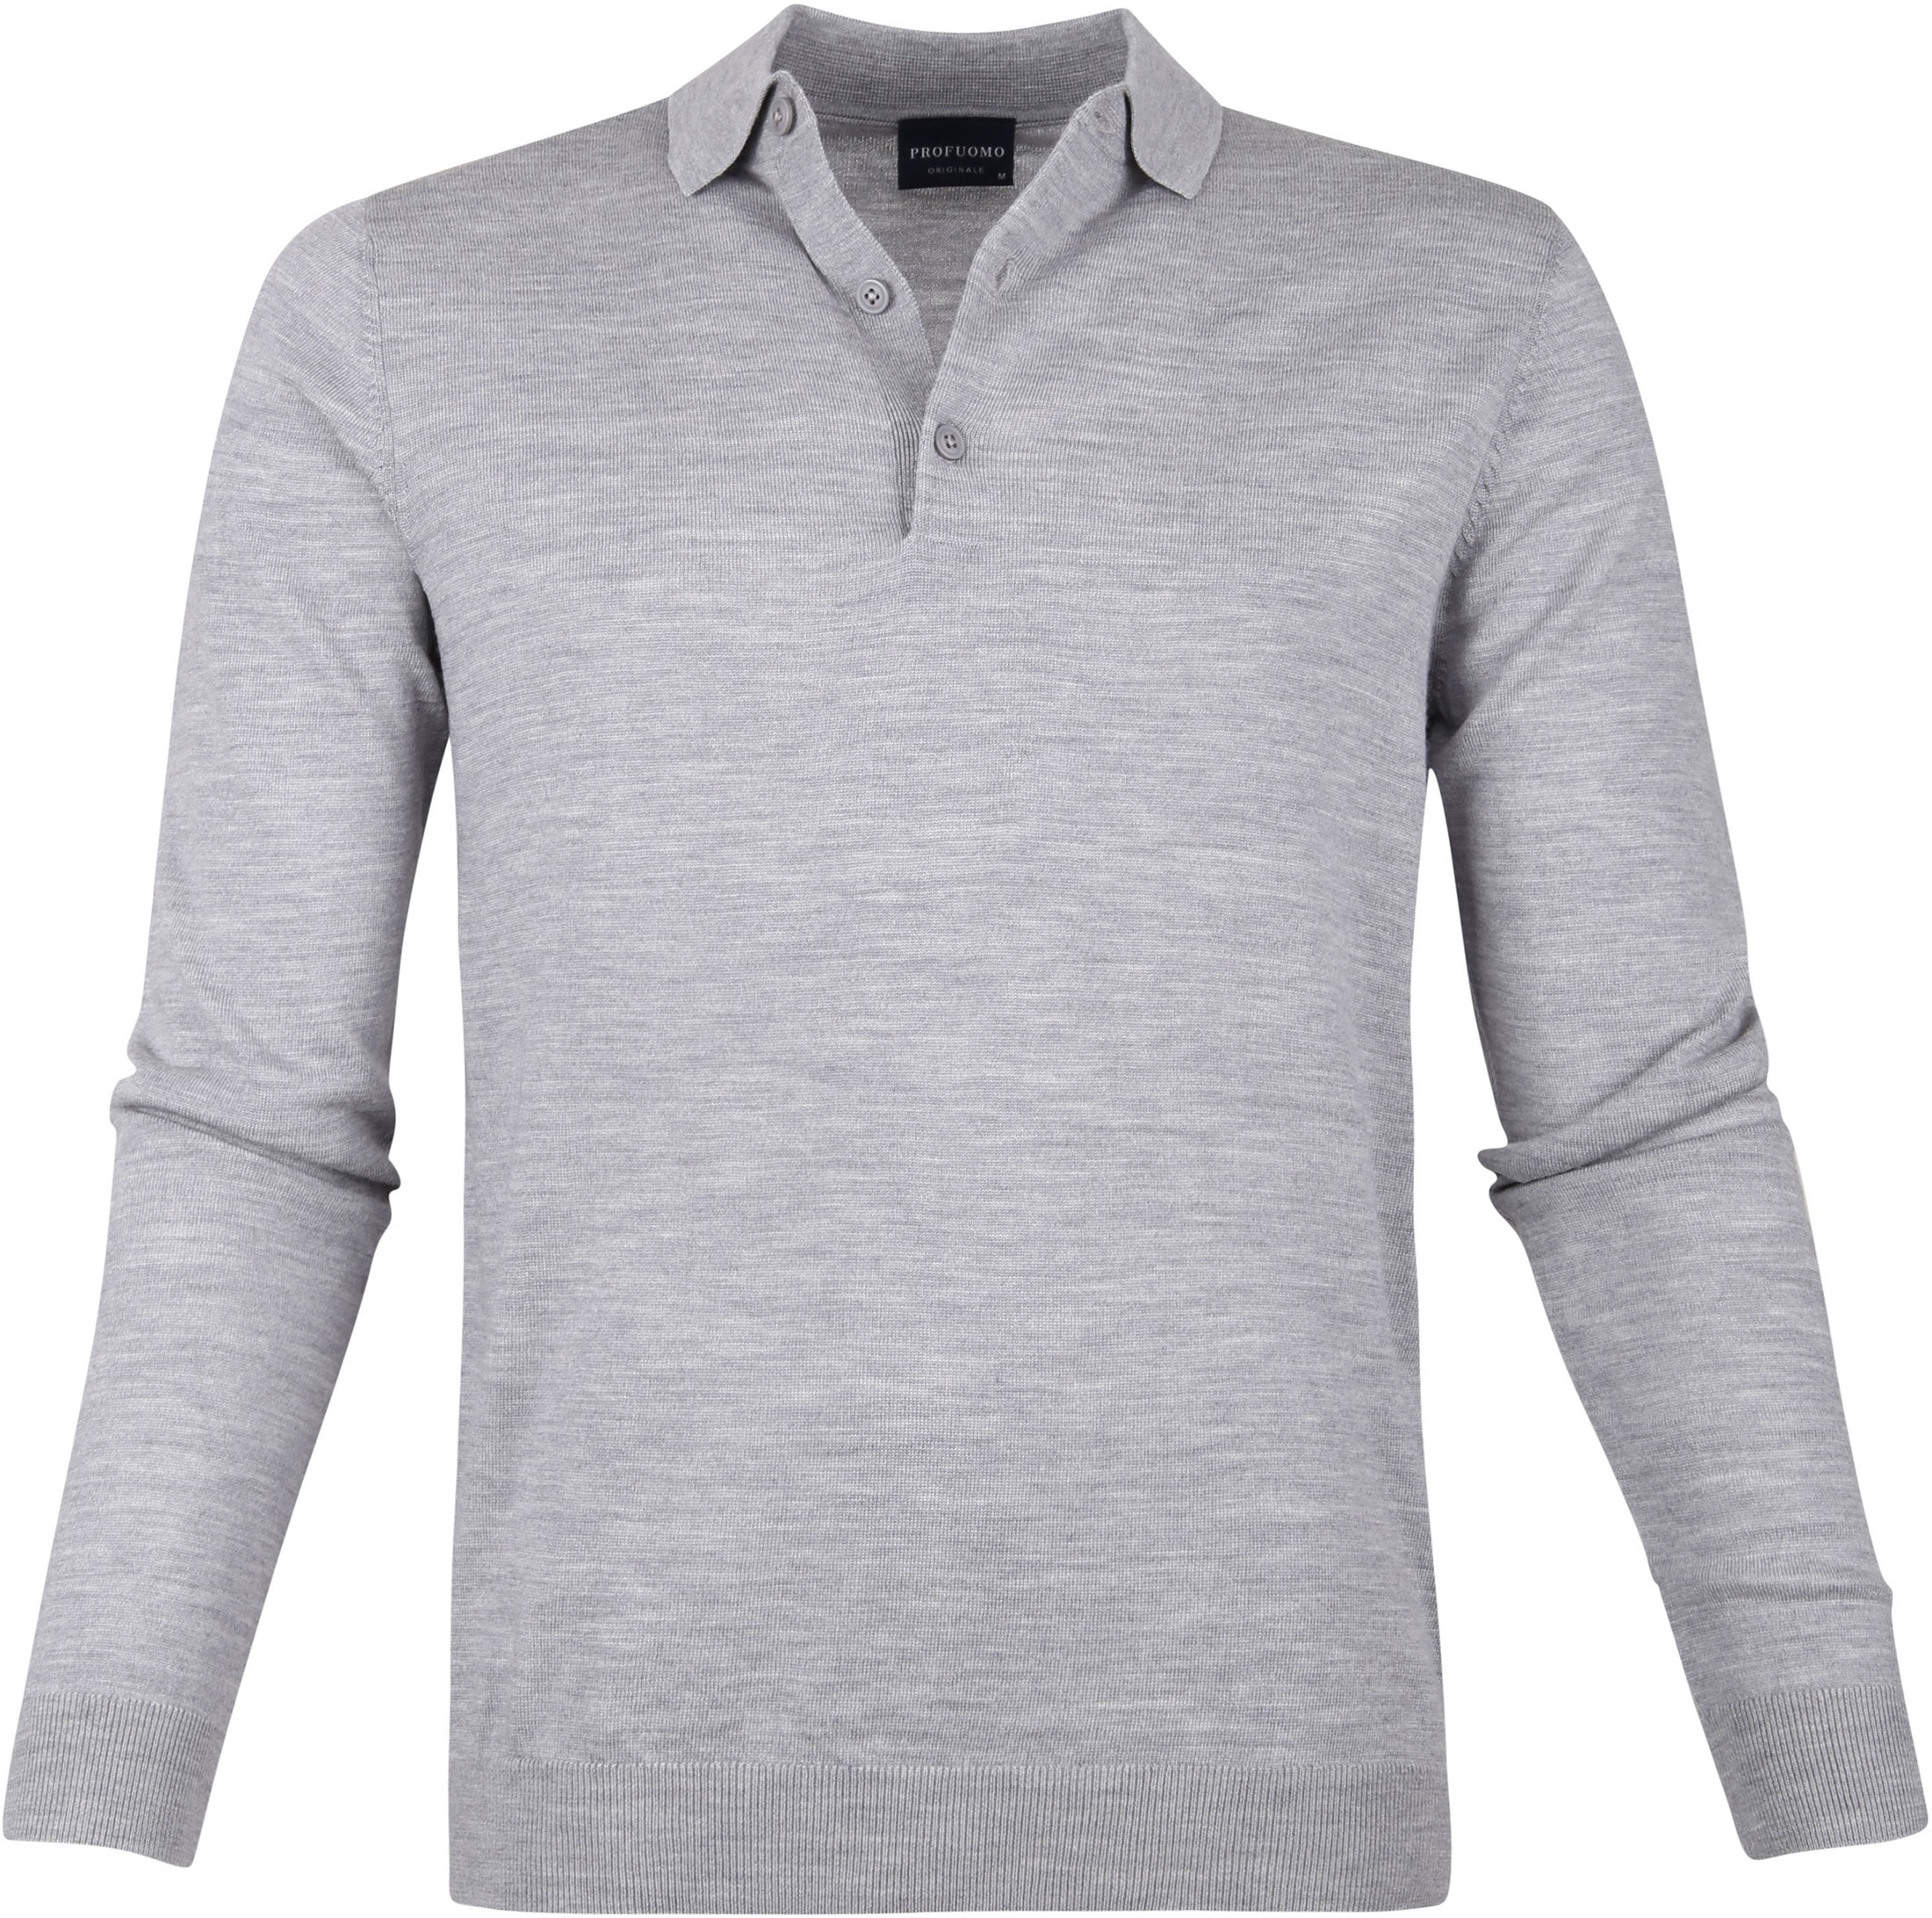 Profuomo Merino Poloshirt Grey photo 0